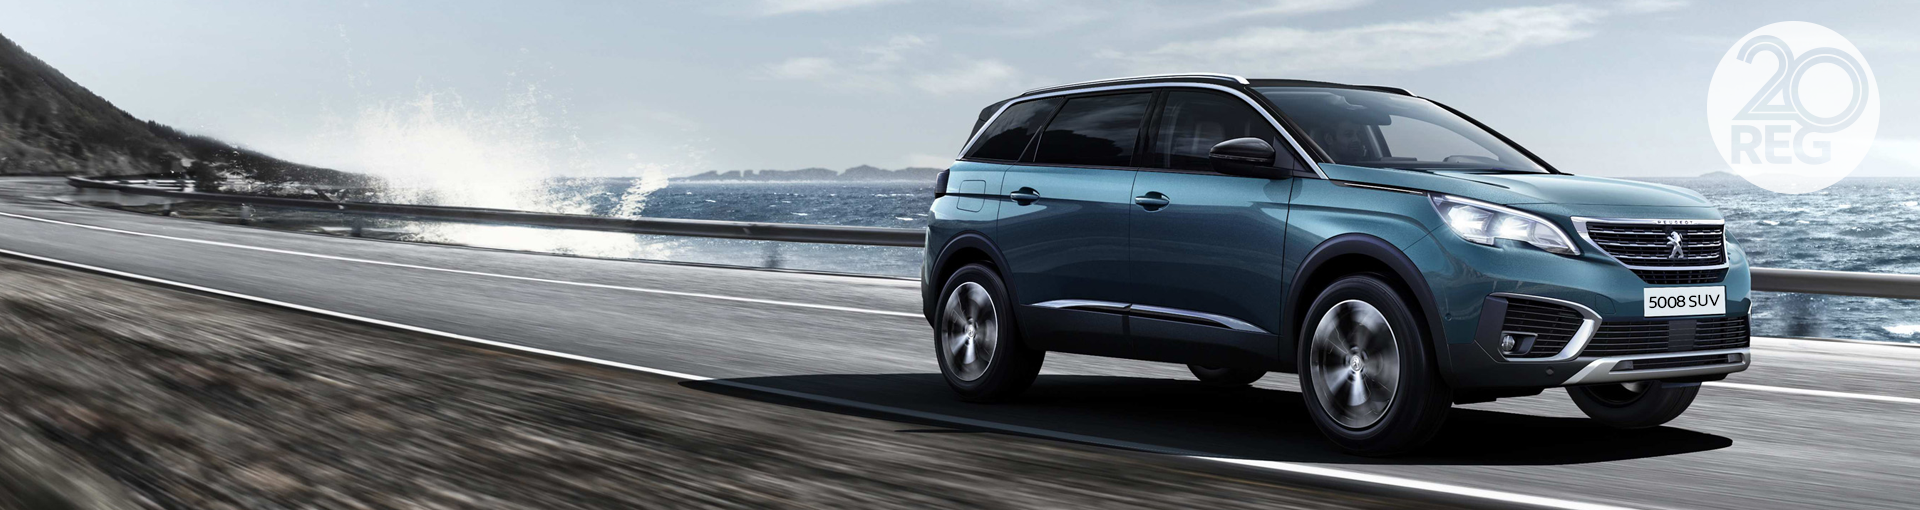 New Peugeot 5008 SUV - 20 Plate